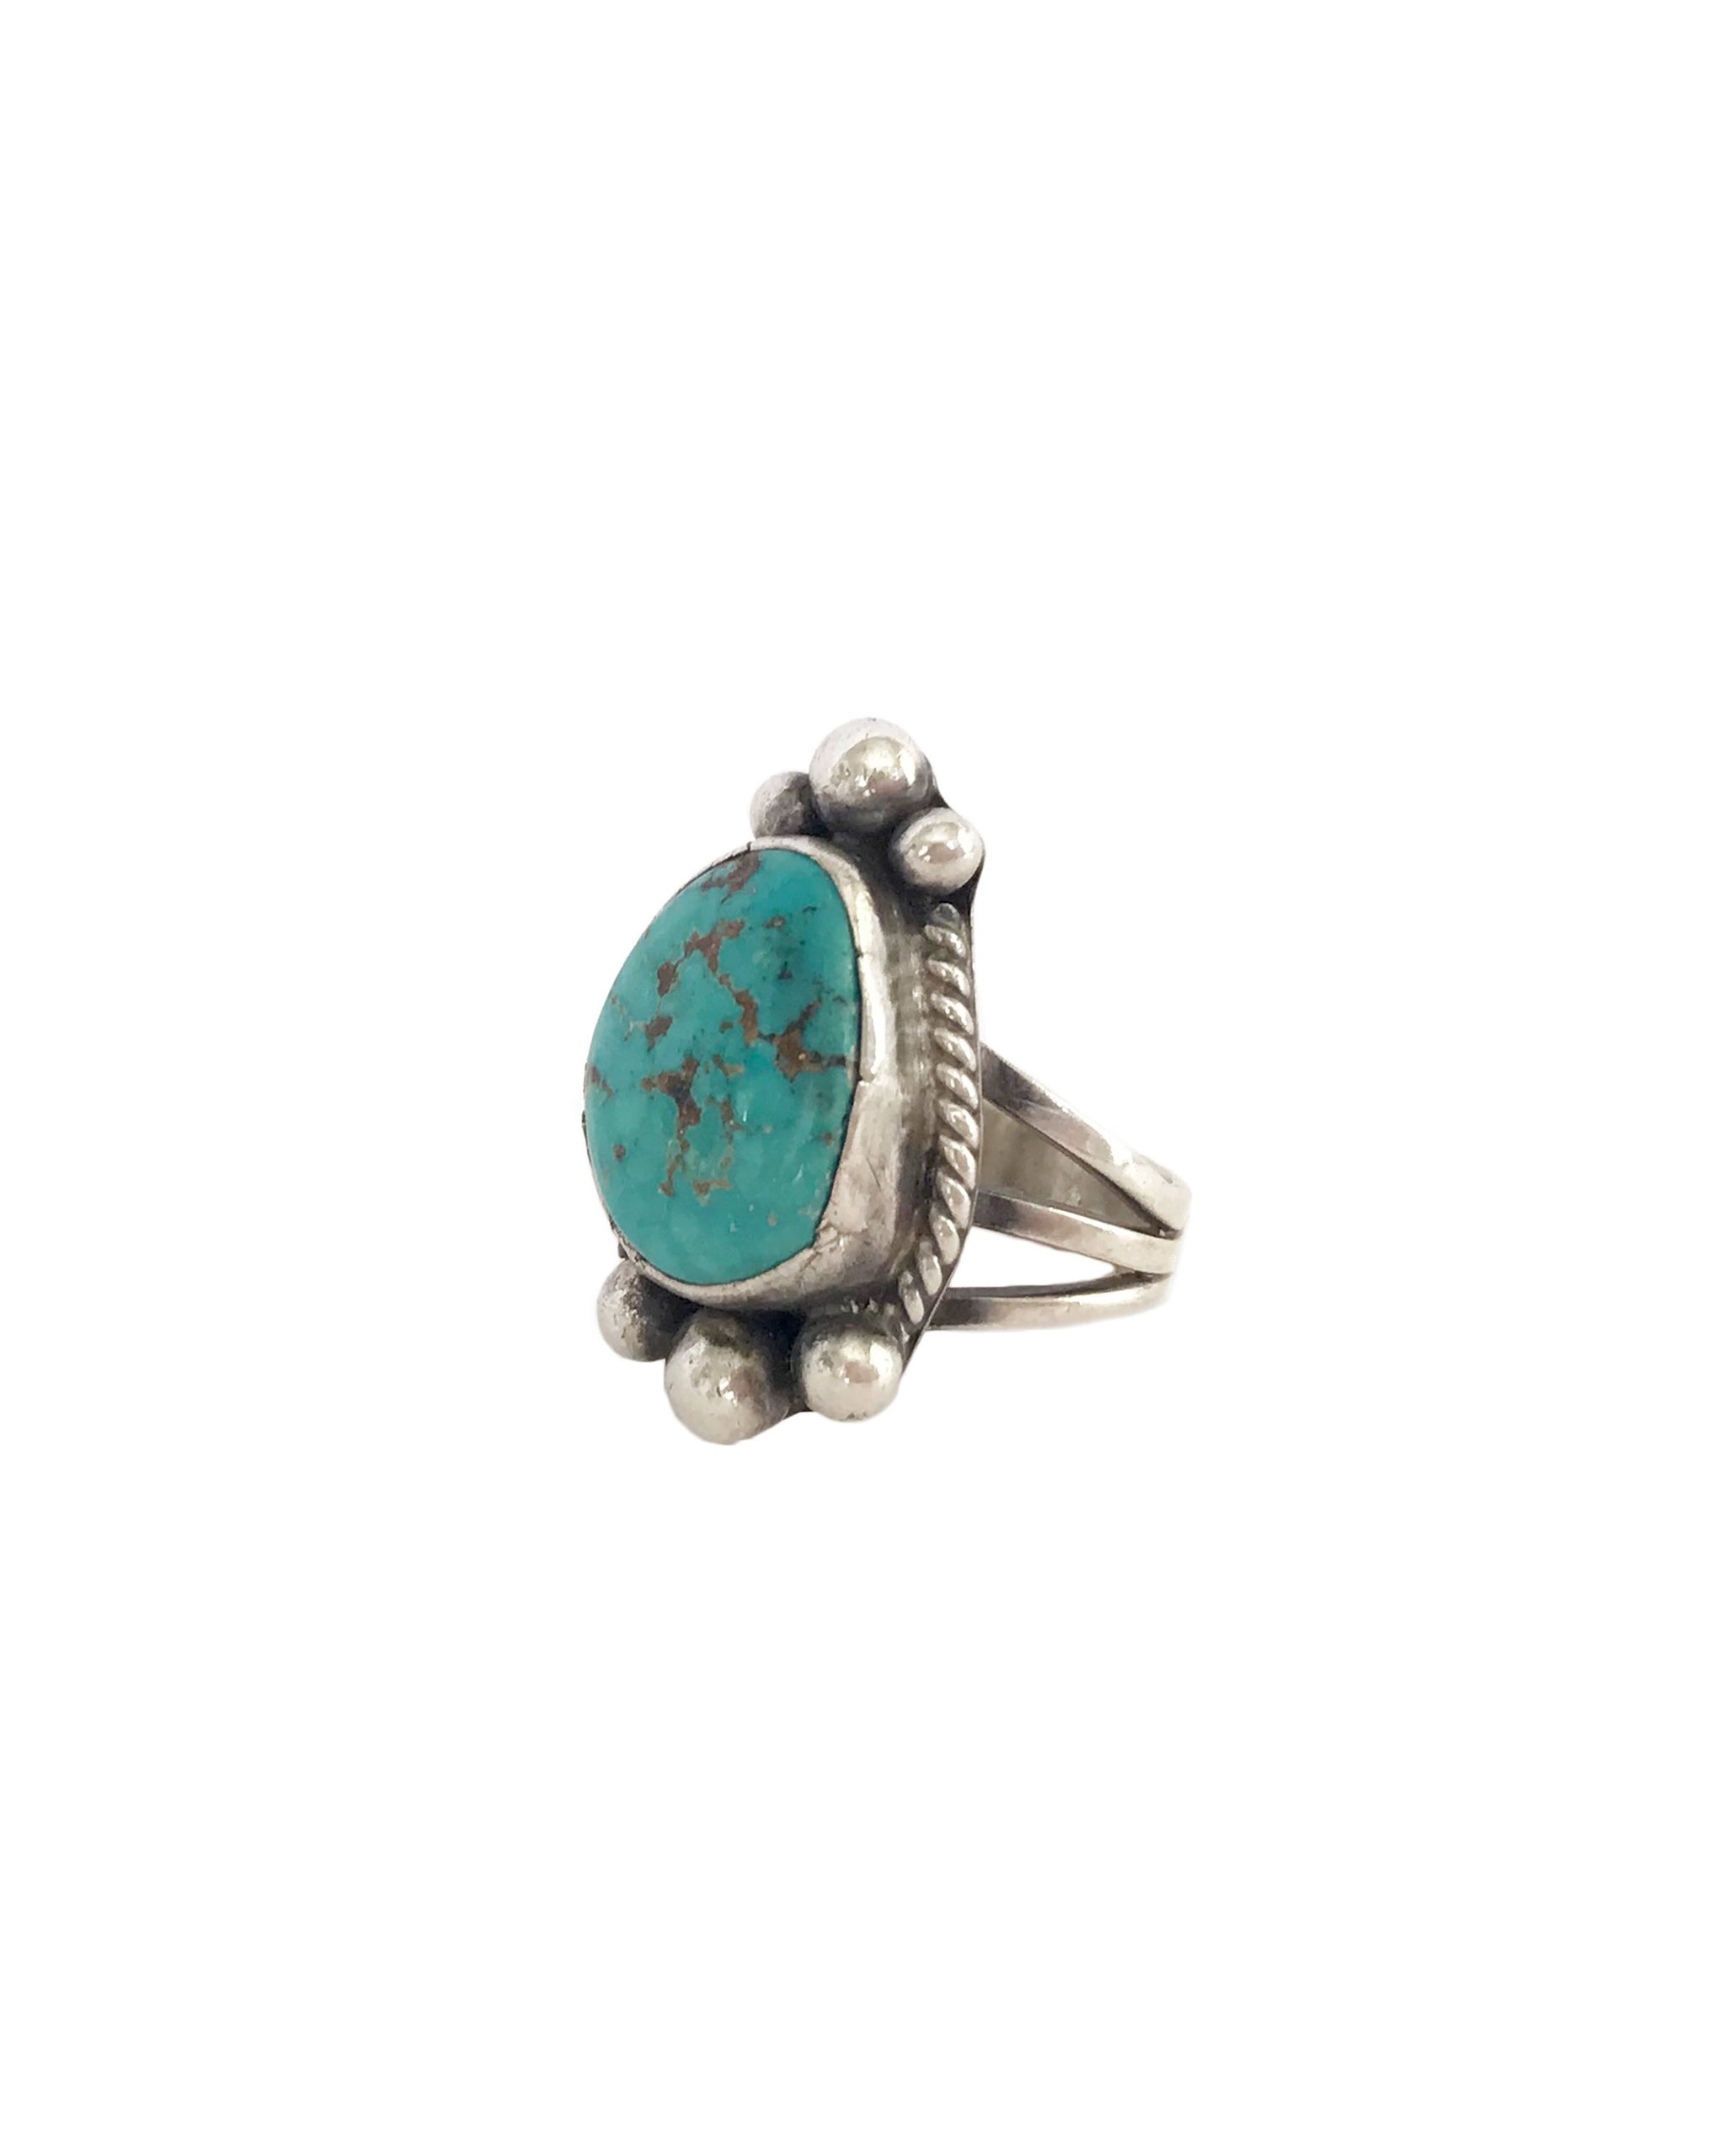 VINTAGE CORTEZ RING - TURQUOISE + TOBACCO